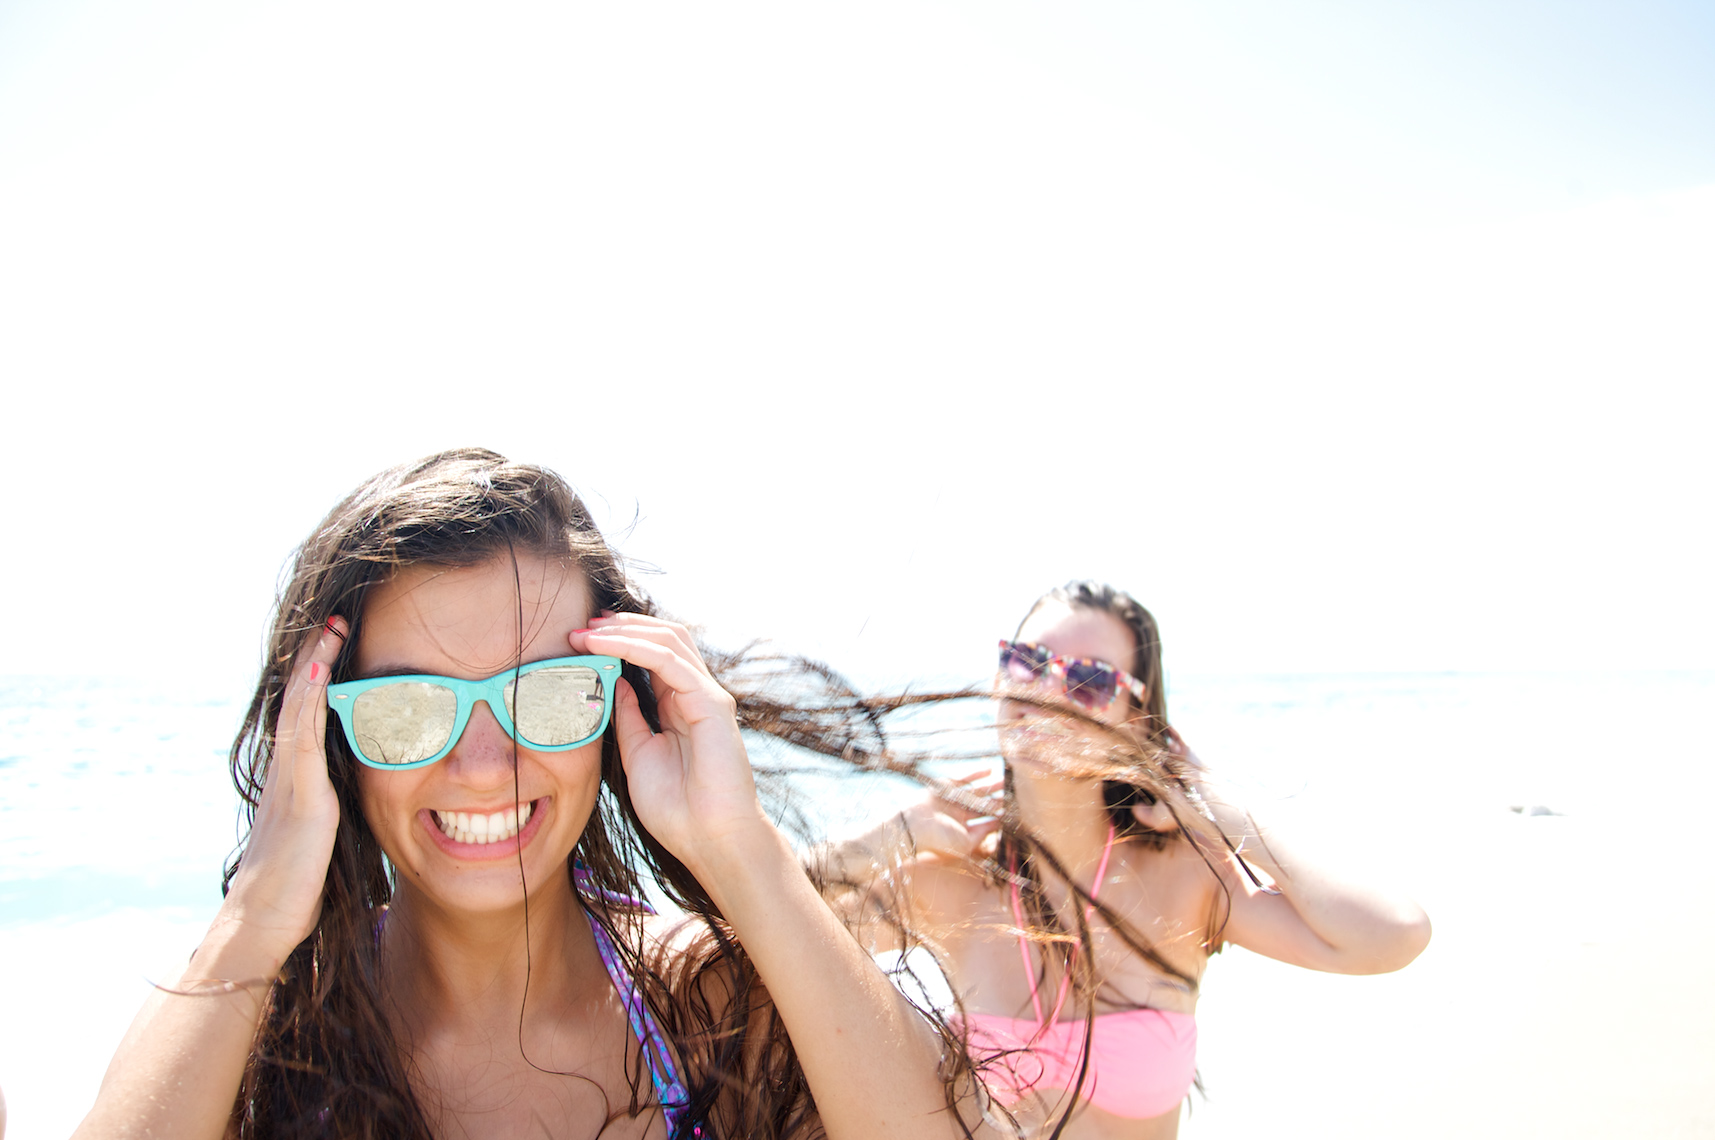 teenage girls having fun at beach_A2D3099_Robert-Holland.jpg